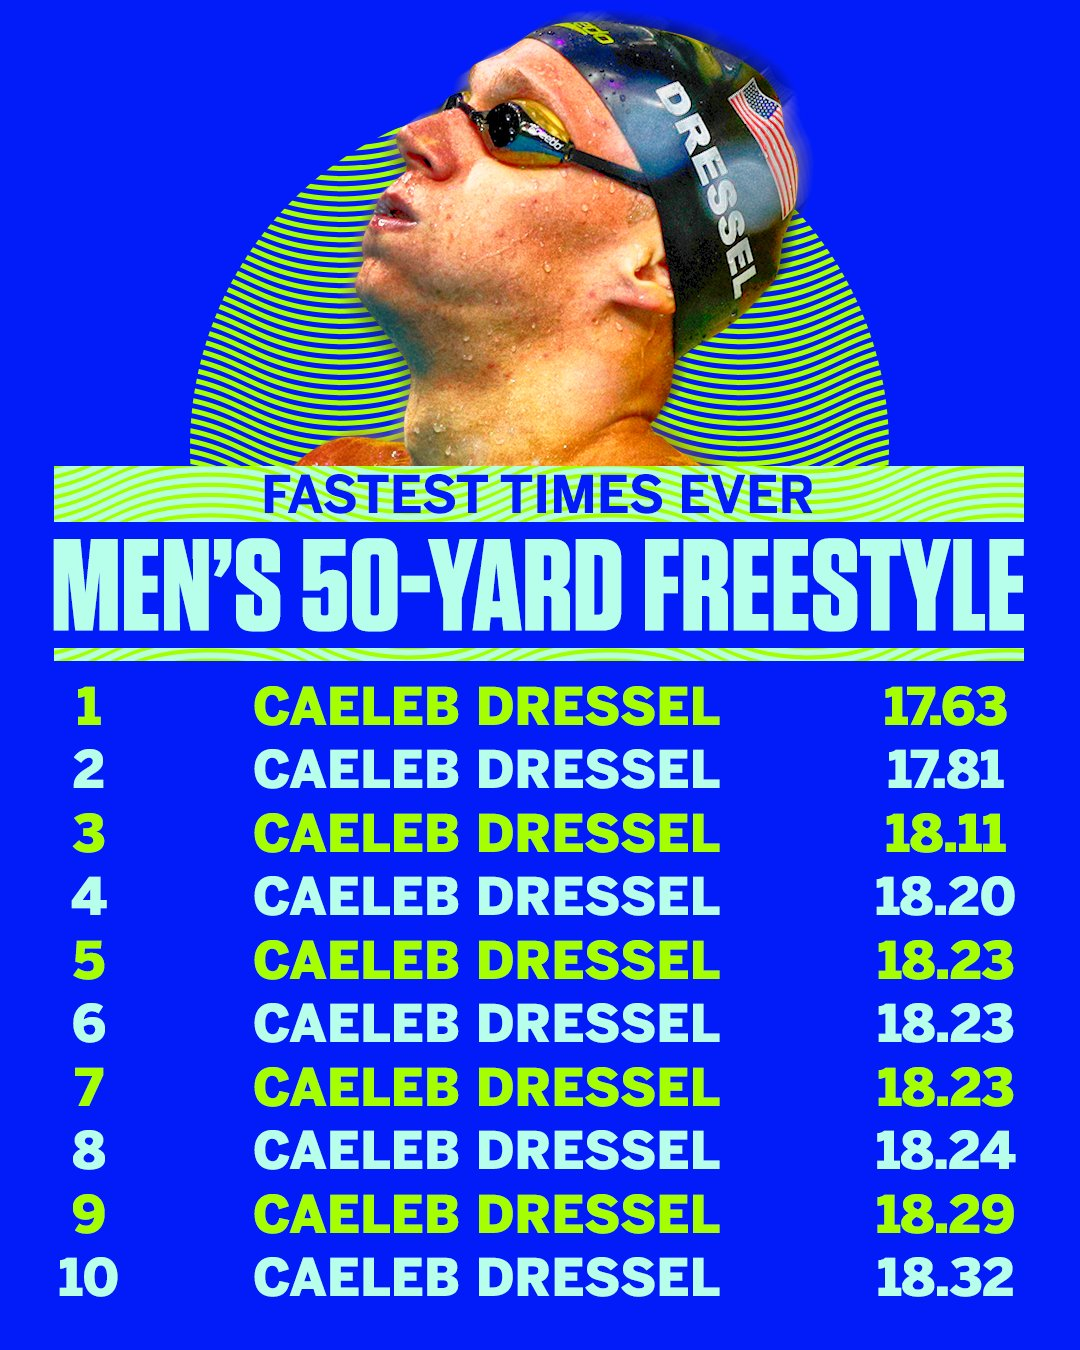 American swimmer Caeleb Dressel is better in the 50 free than pretty much anybody in anything. https://t.co/w3v1Z2ihCL